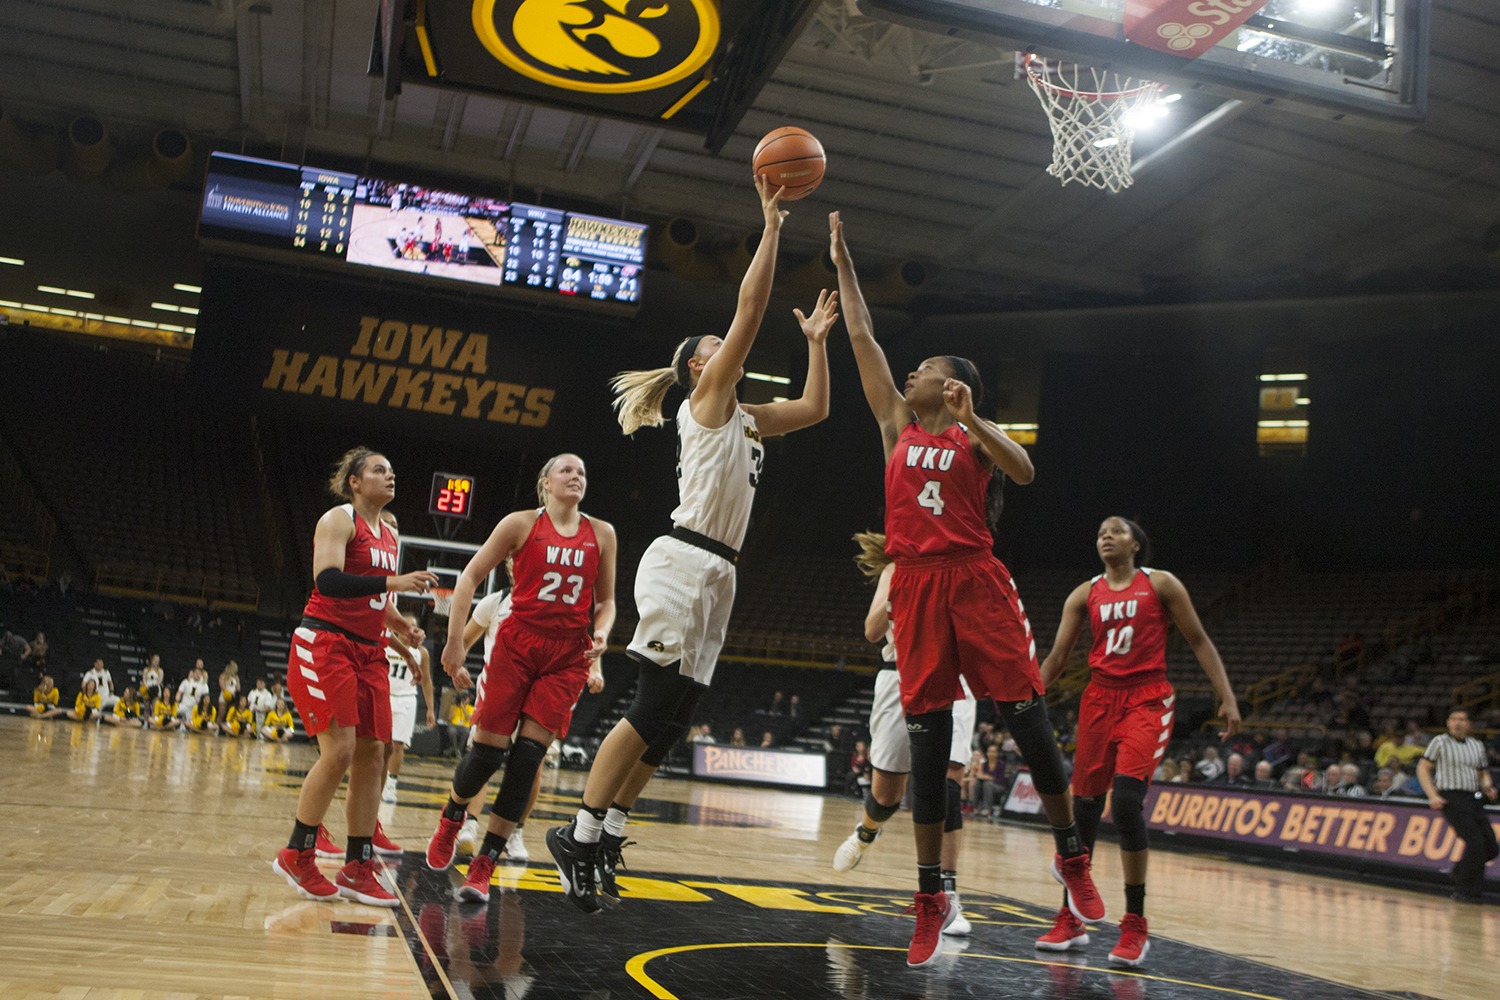 Iowa guard Makenzie Meyer taking a shot at Carver Hawkeye Arena on Saturday, Nov. 11, 2017. The Hawkeyes defeated the Lady Toppers 104-97 in overtime.